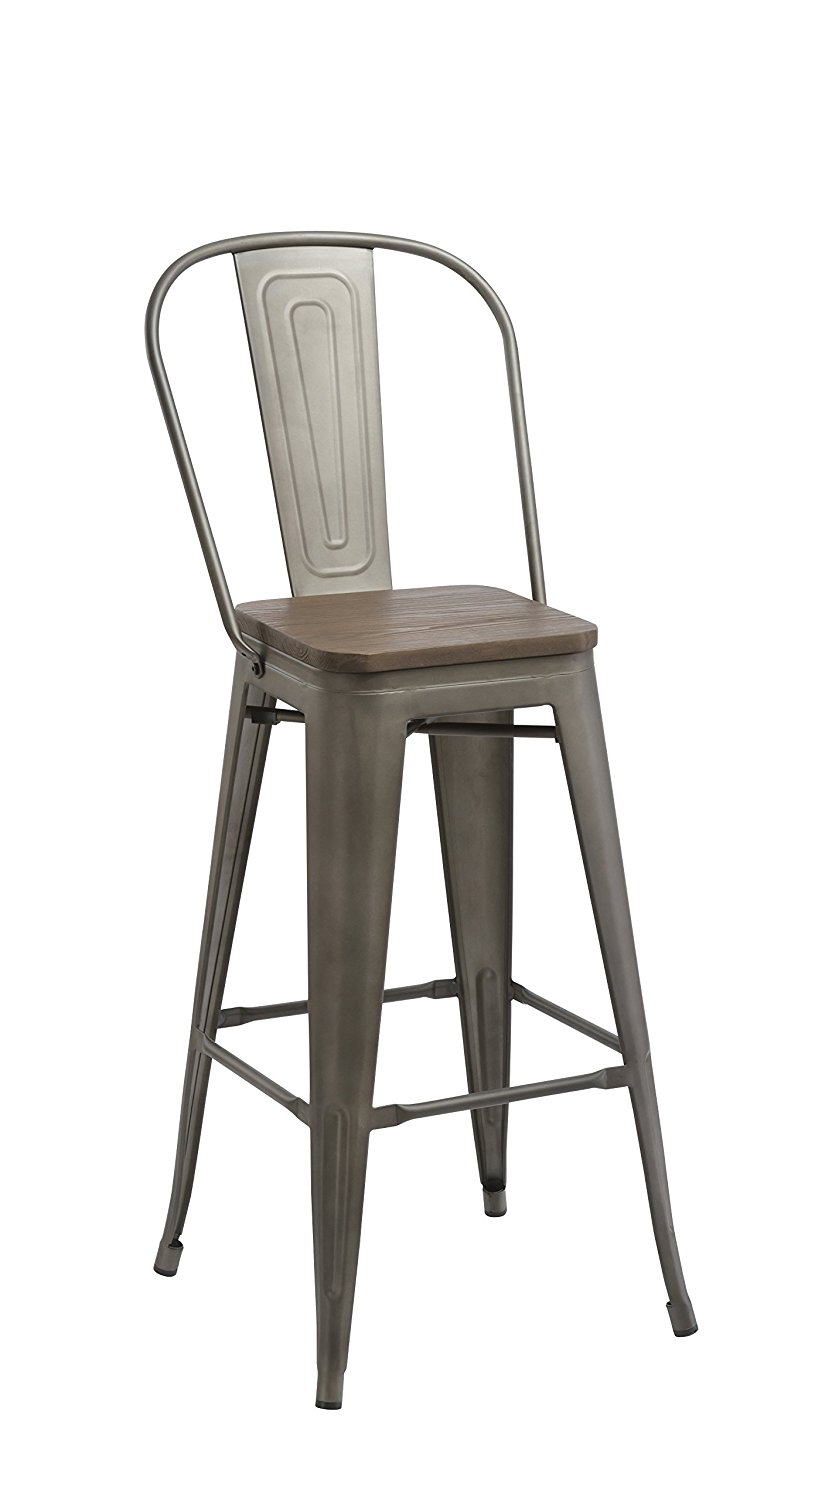 30 Bar Stool Chair High Back Natural Wooden Seat Set Of 2 Barstool